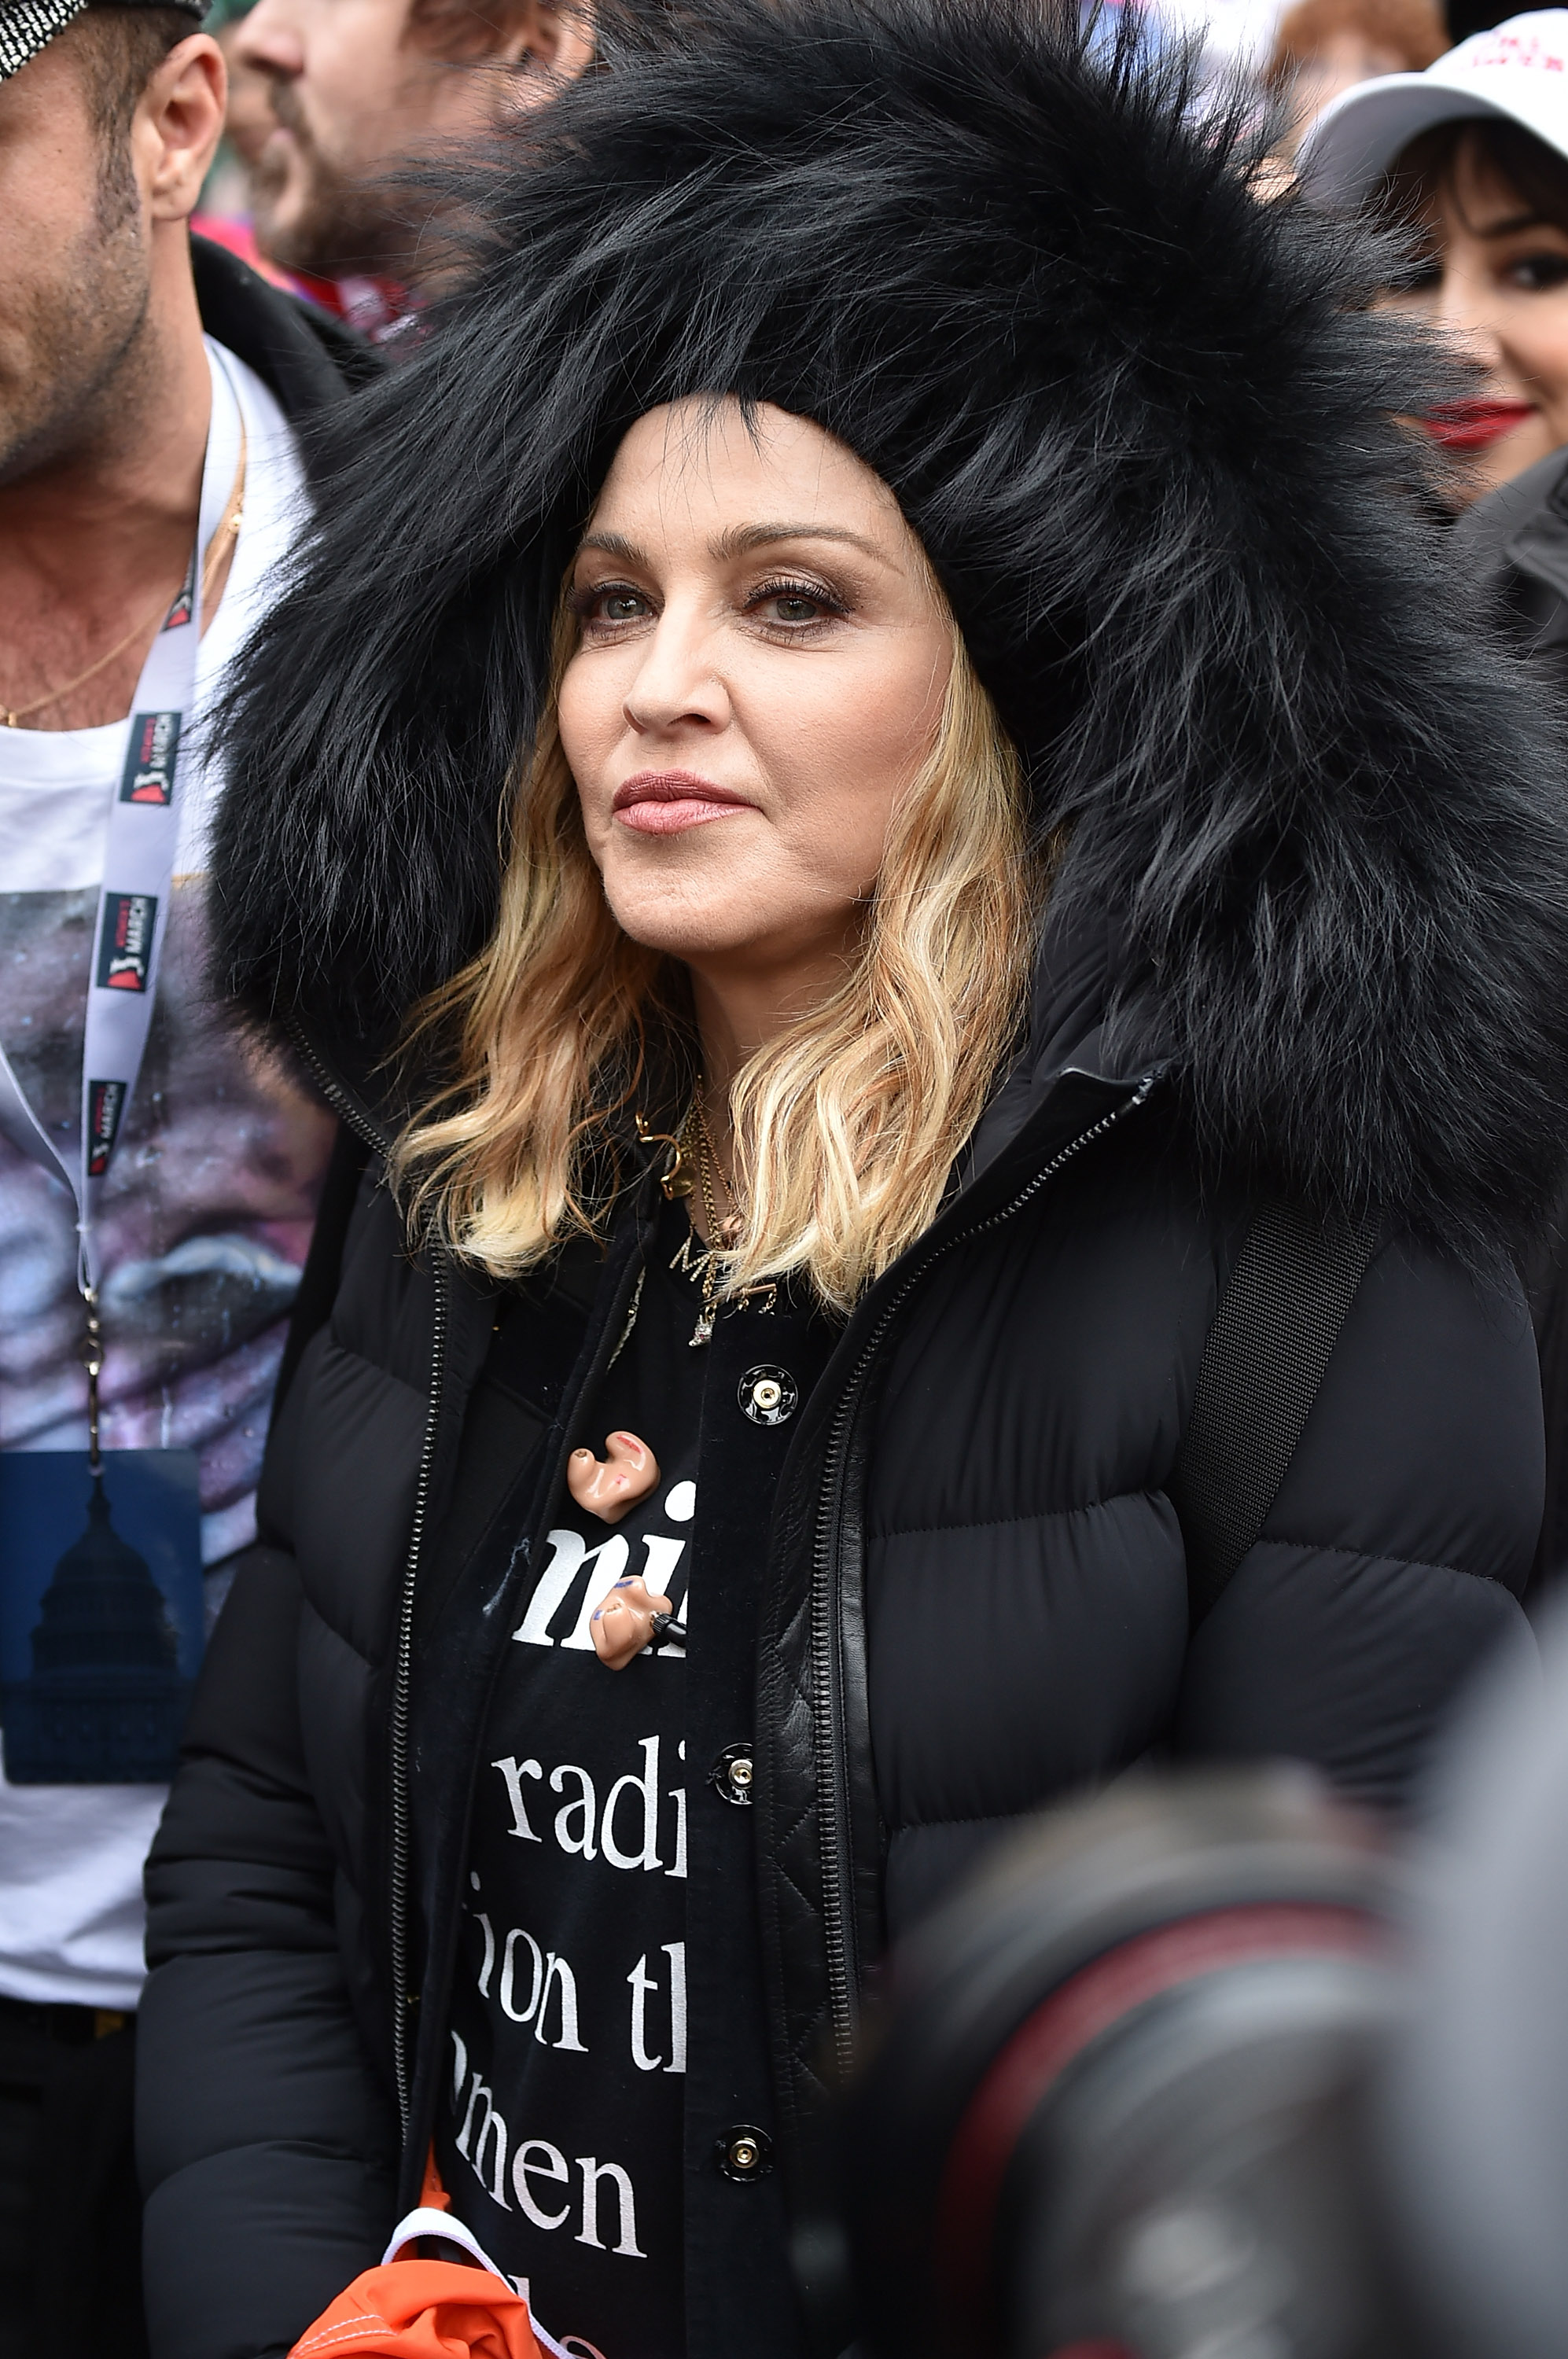 Madonna attends the Women's March on Washington on January 21, 2017 in Washington, DC.  Theo Wargo—Getty Images